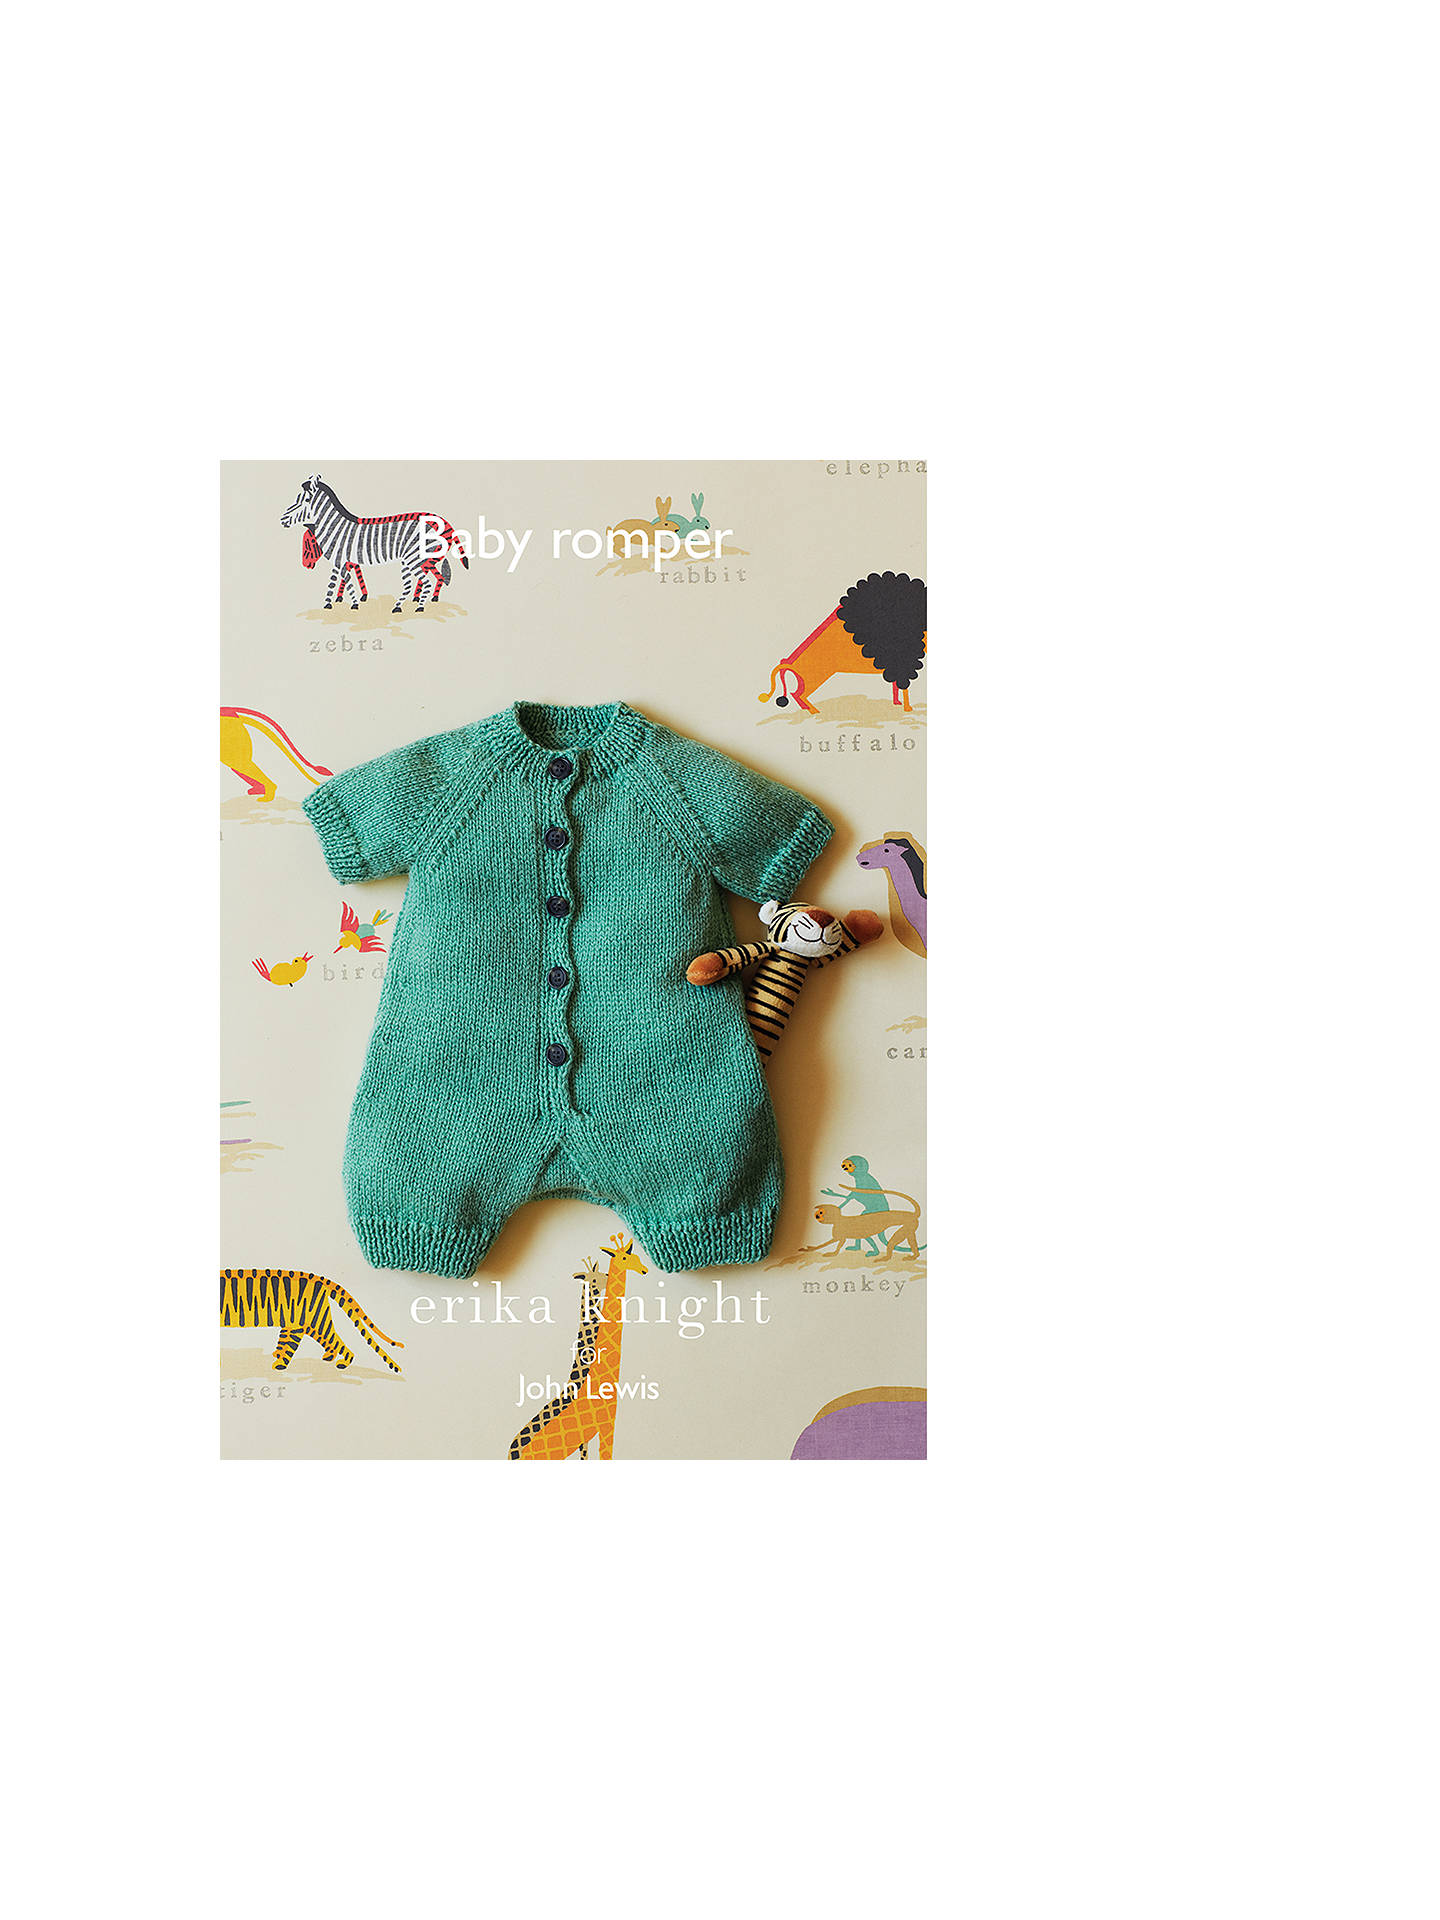 7d50ae24758a19 Buy Erika Knight for John Lewis Baby Romper Knitting Pattern Online at  johnlewis.com ...